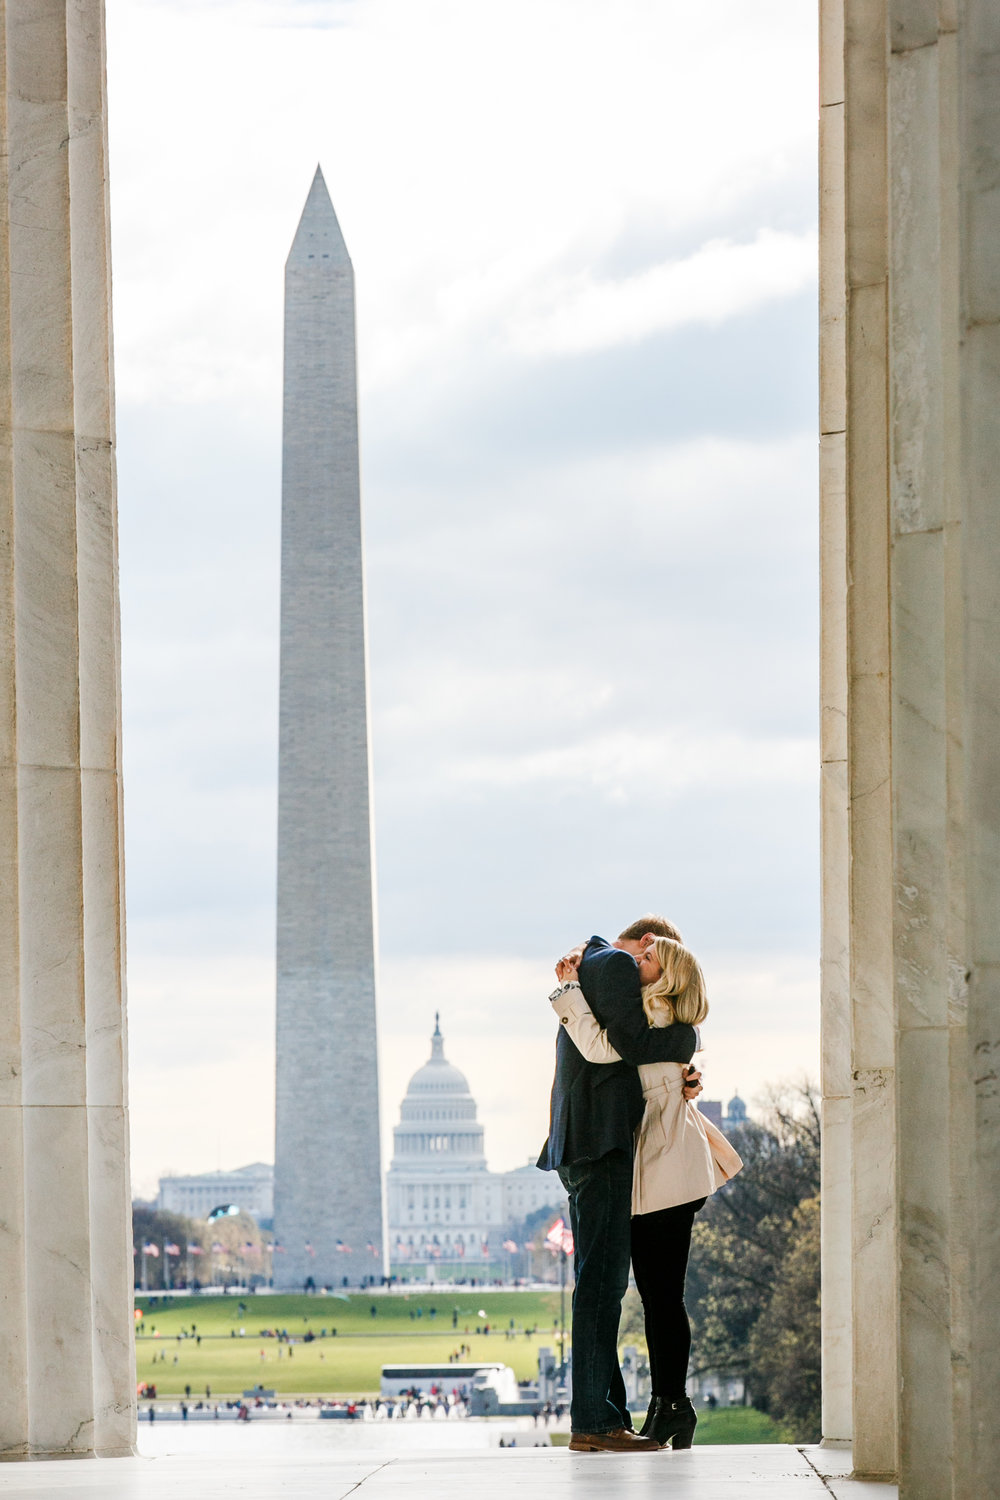 Lincoln-Memorial-Cherry-Blossom-Surprise-Proposal